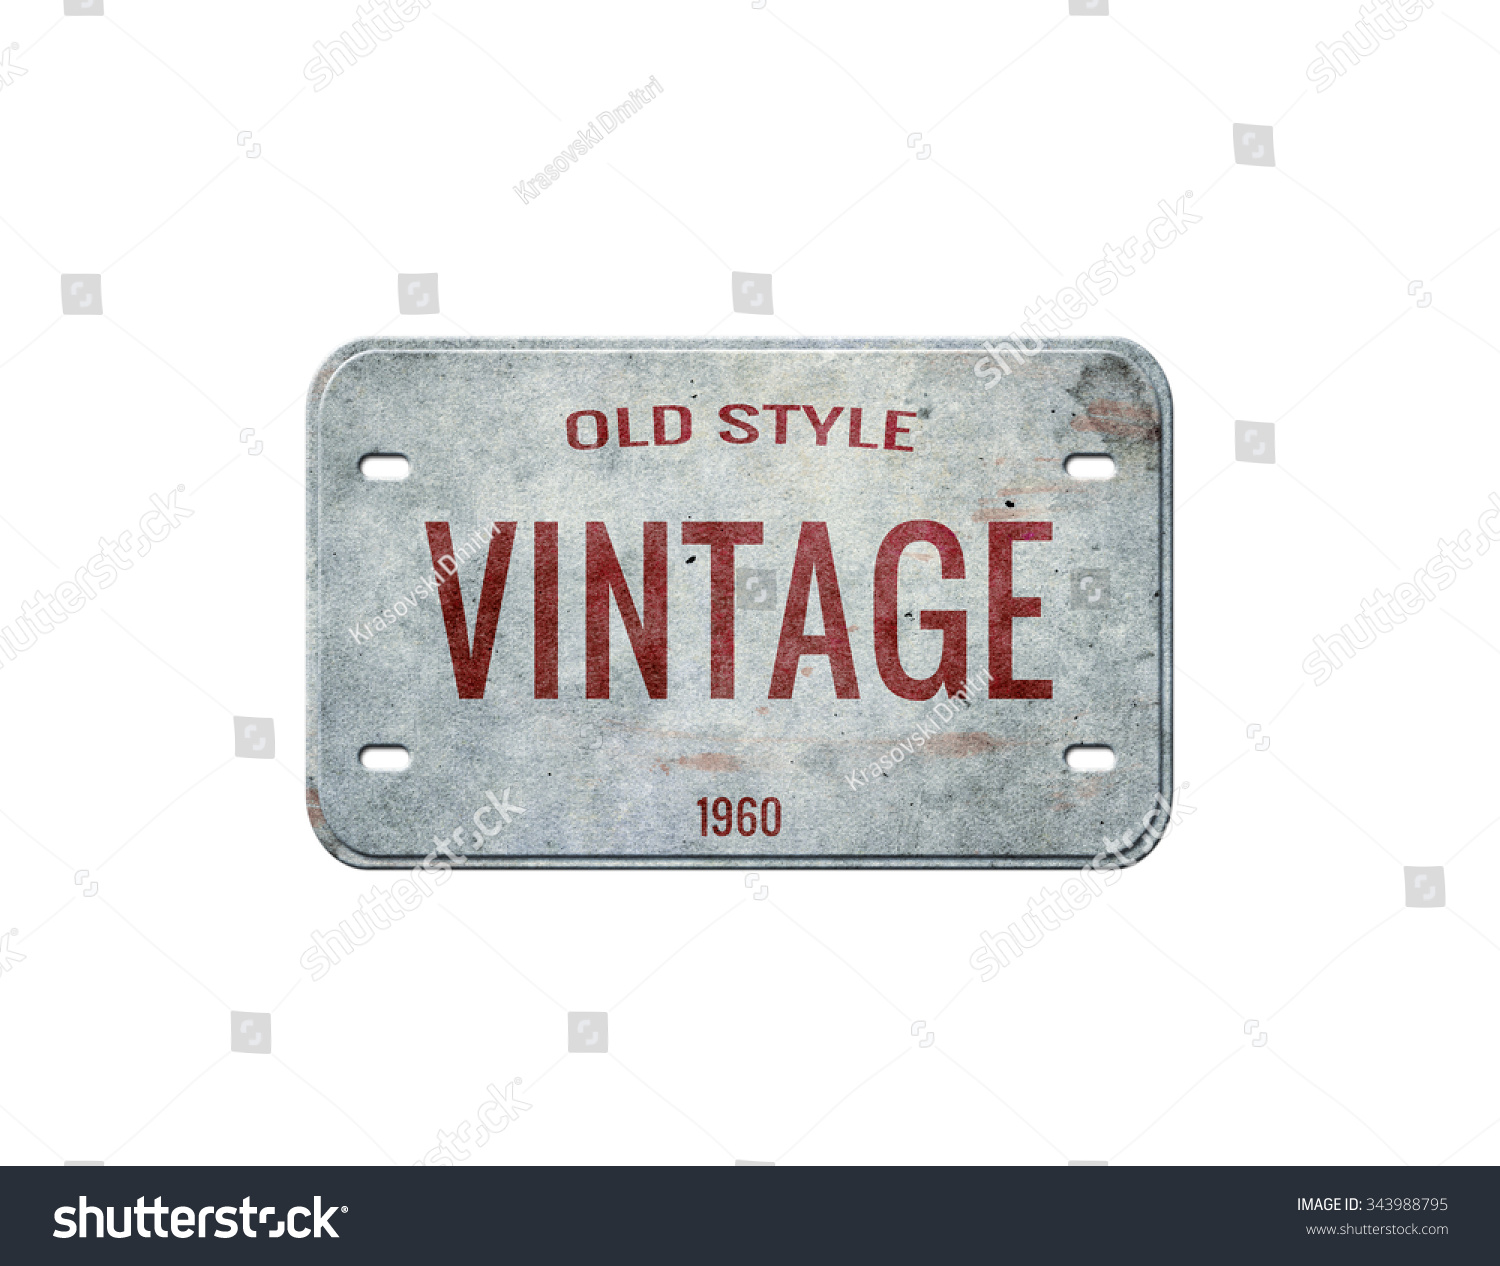 Old Plate Vintage Plate Isolated Stock Illustration 343988795 ...